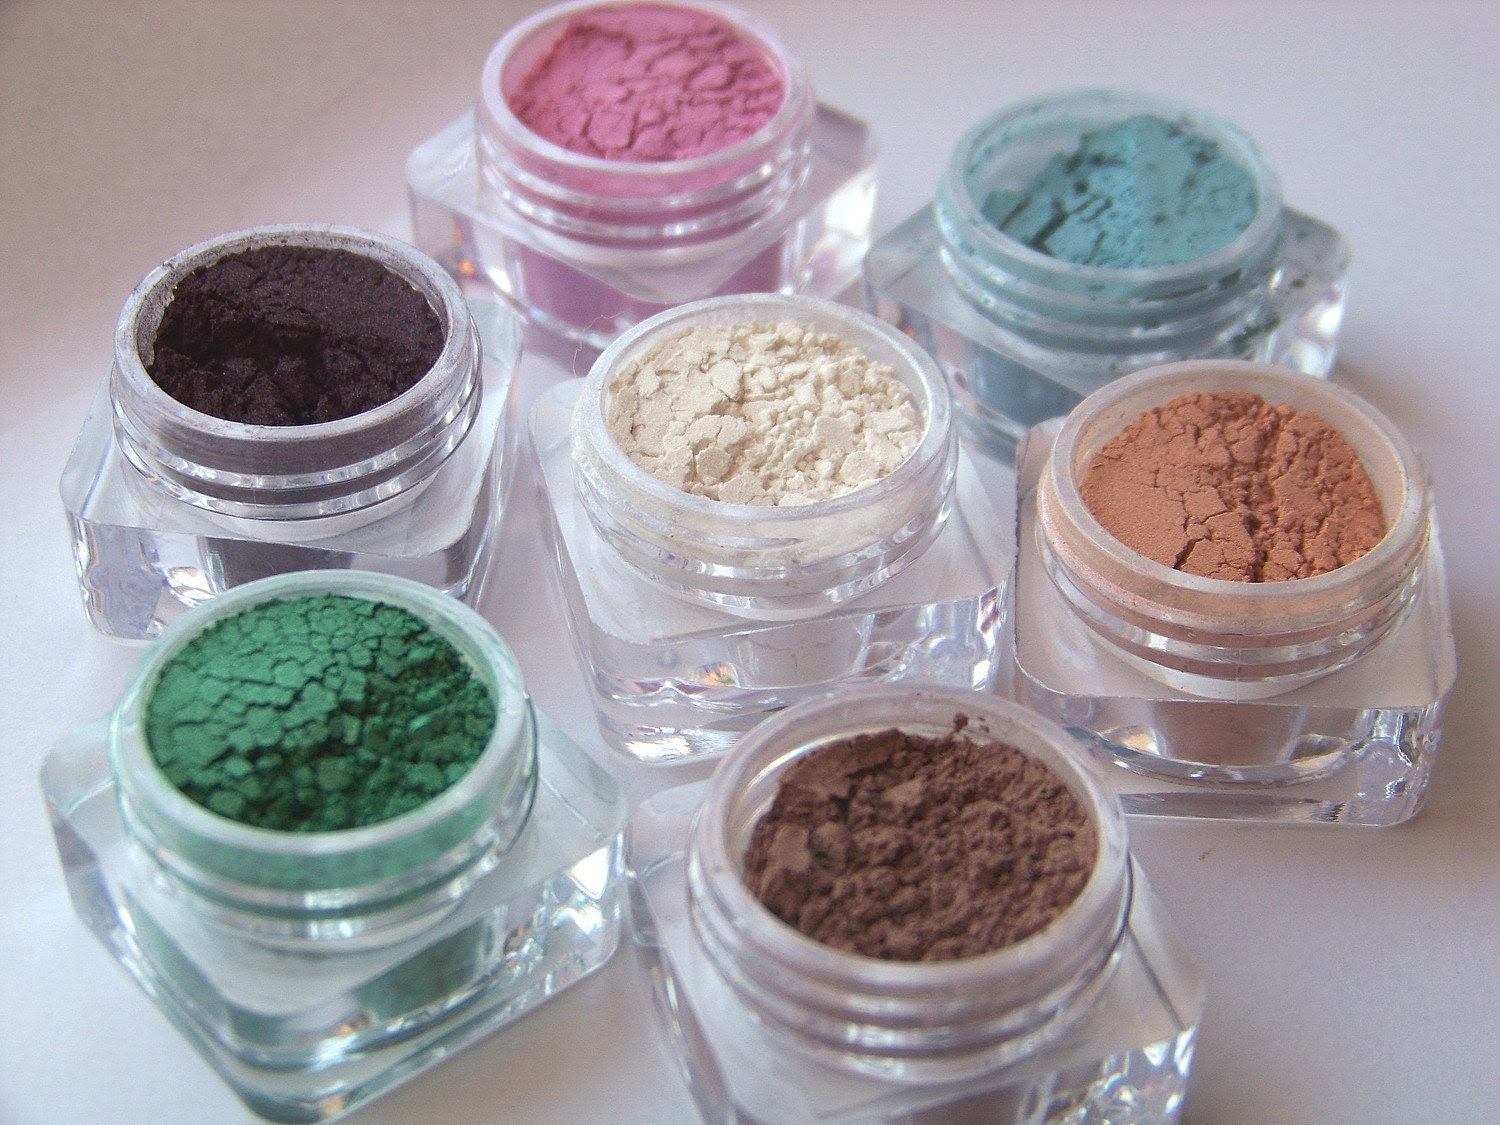 BadHabitMinerals our MakeUp Etsy